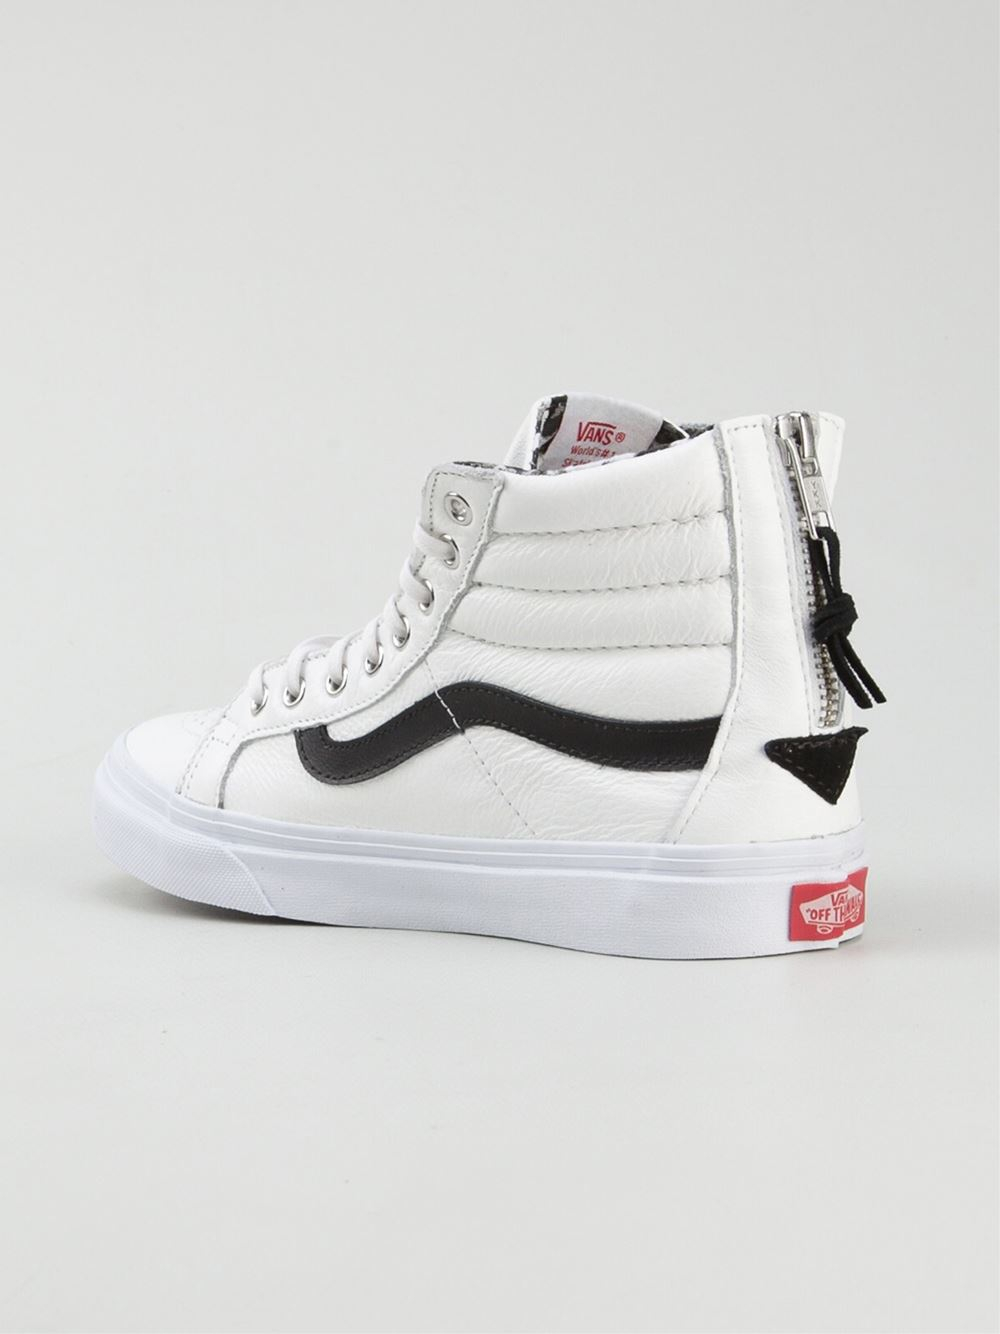 how to clean vans sk8 hi white